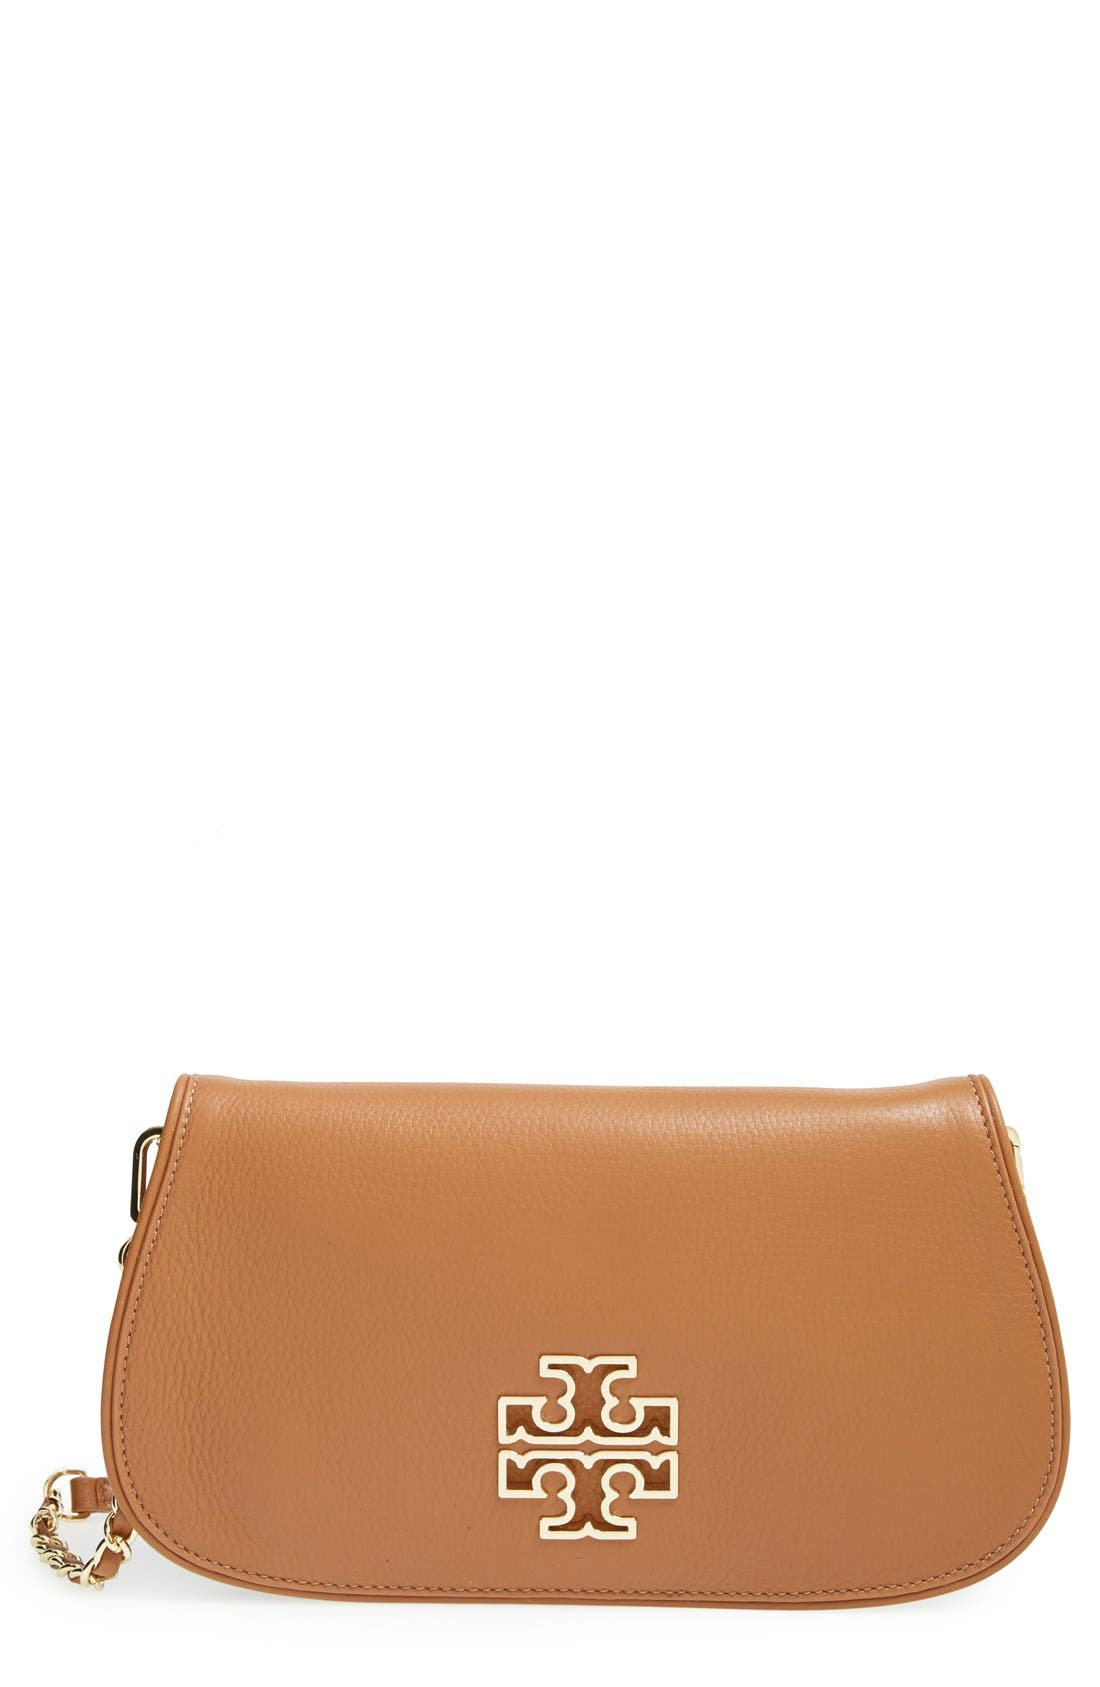 Main Image - Tory Burch 'Britten' Leather Clutch